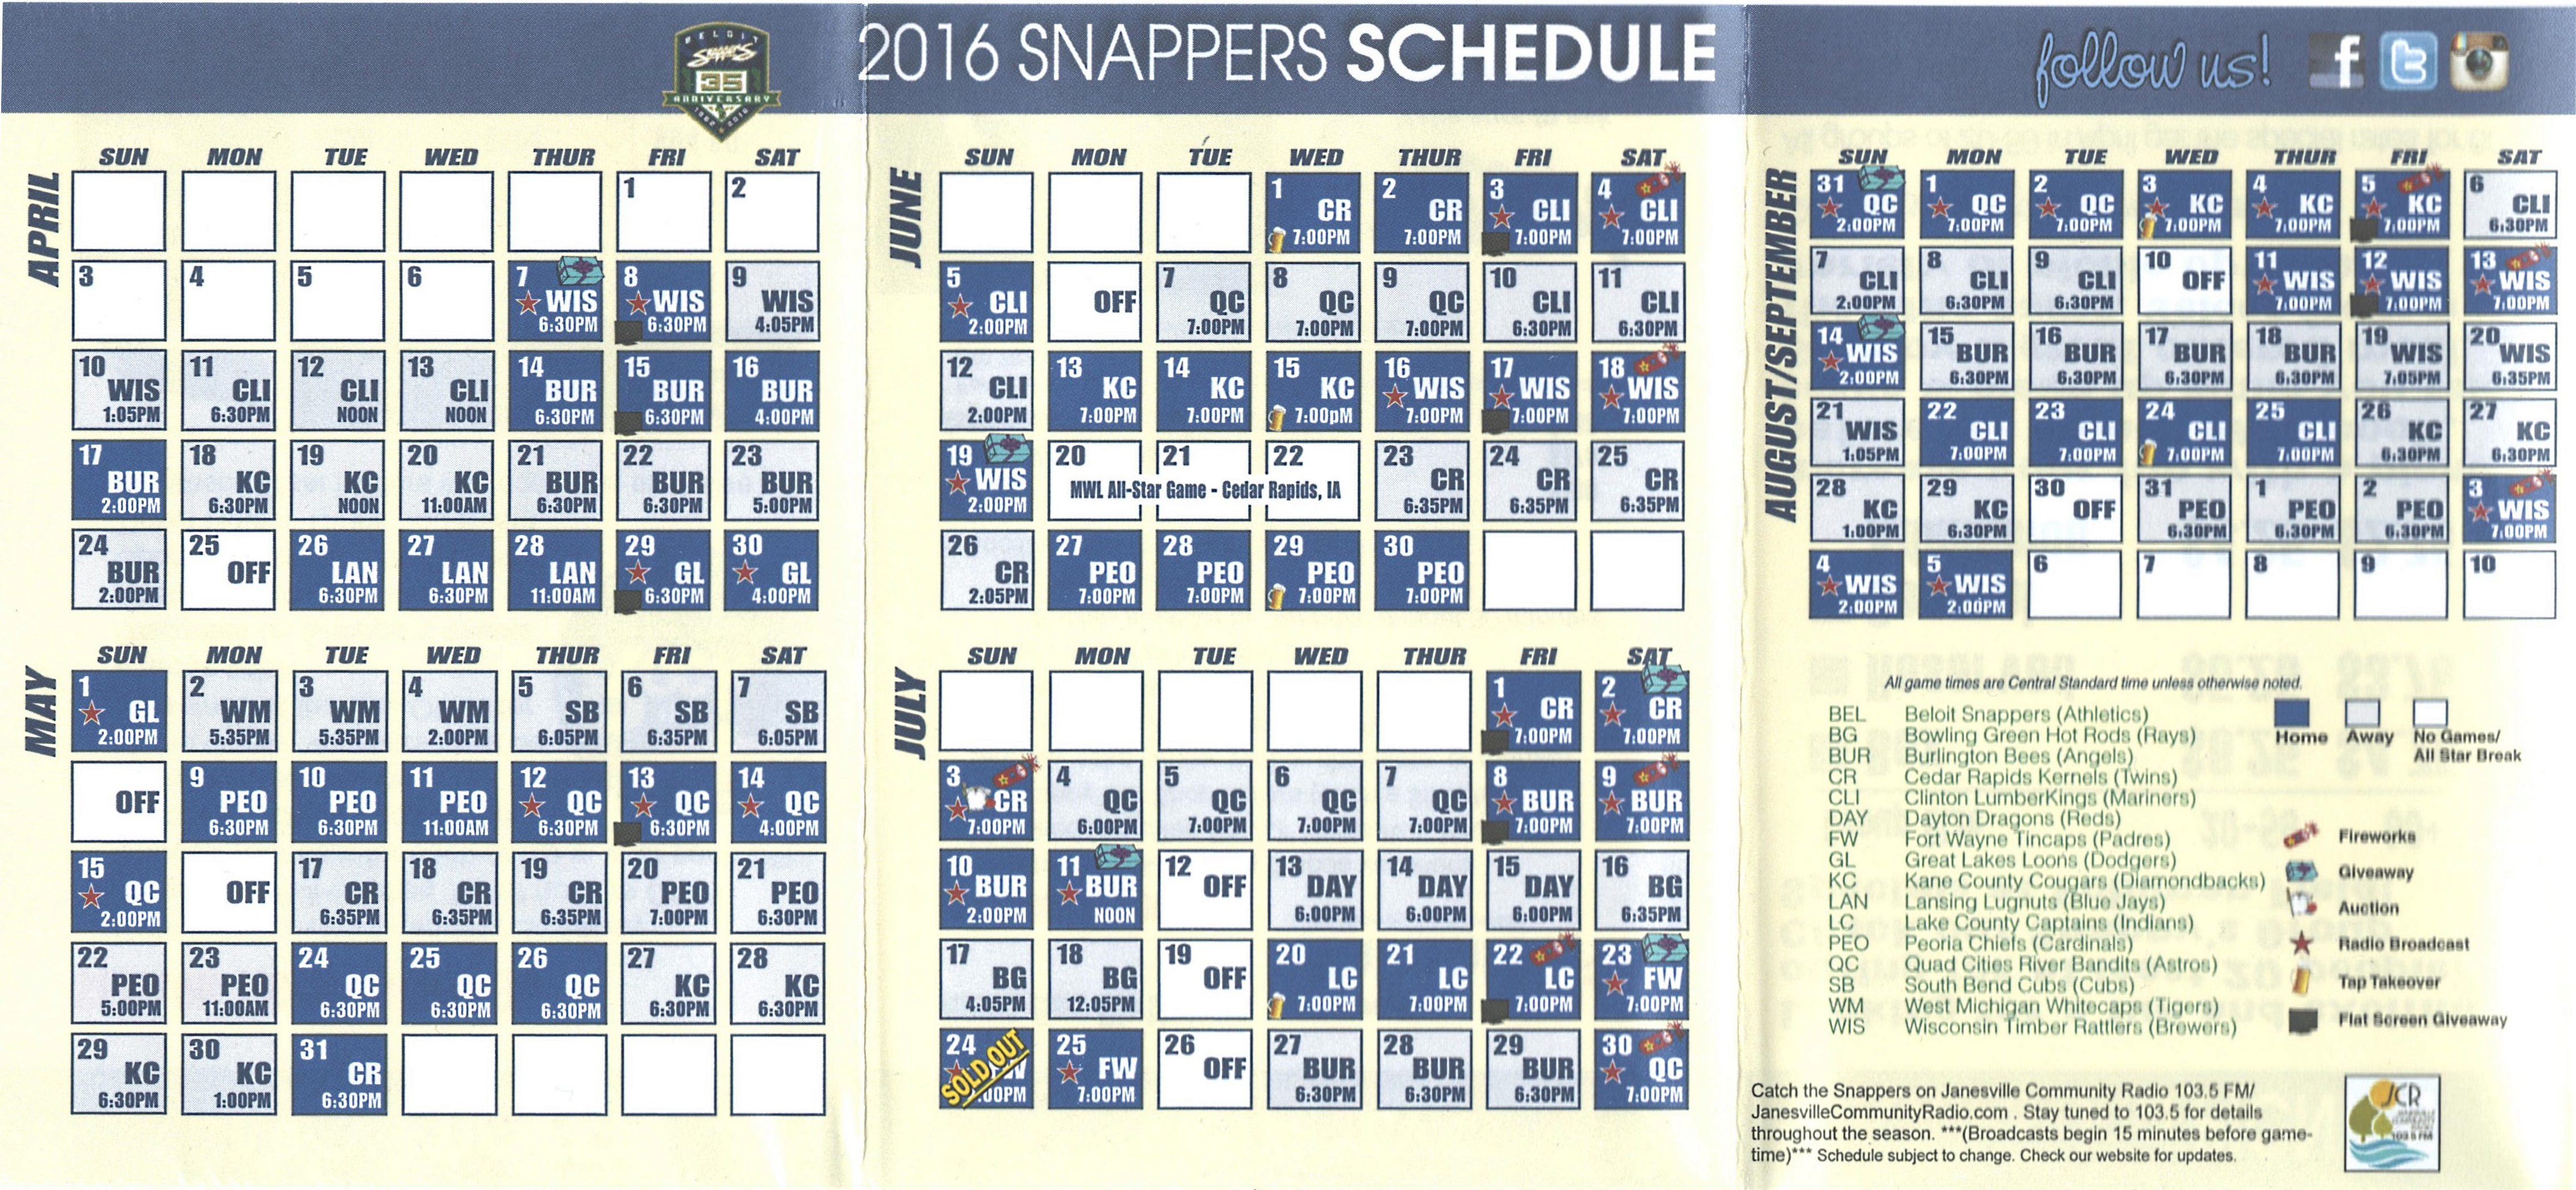 2016 Snappers schedule